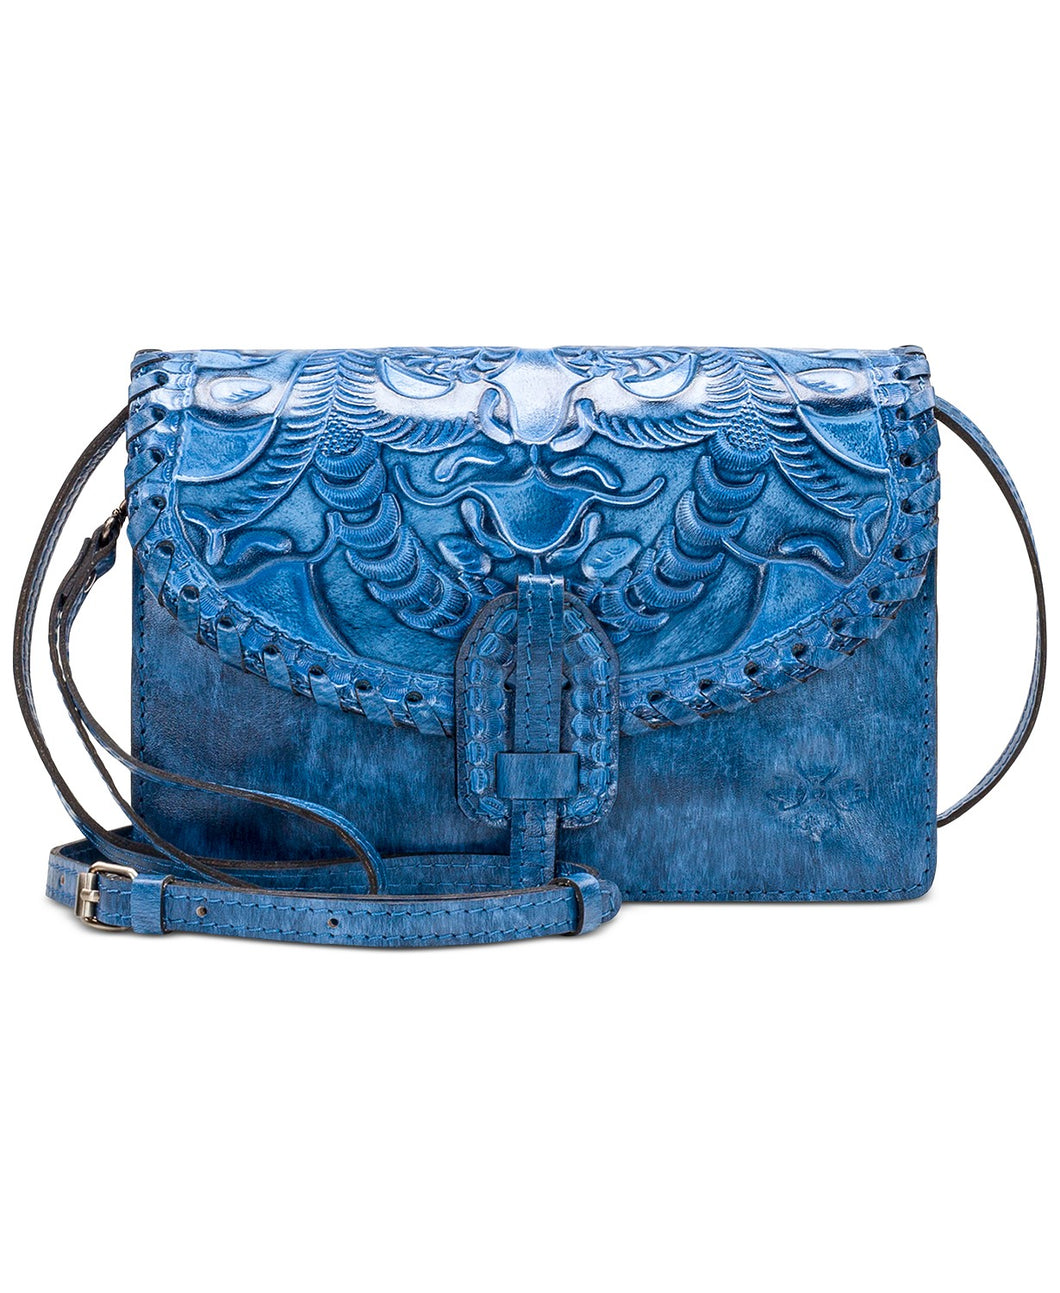 Patricia Nash Burnished Tooled Leather Lanza Crossbody